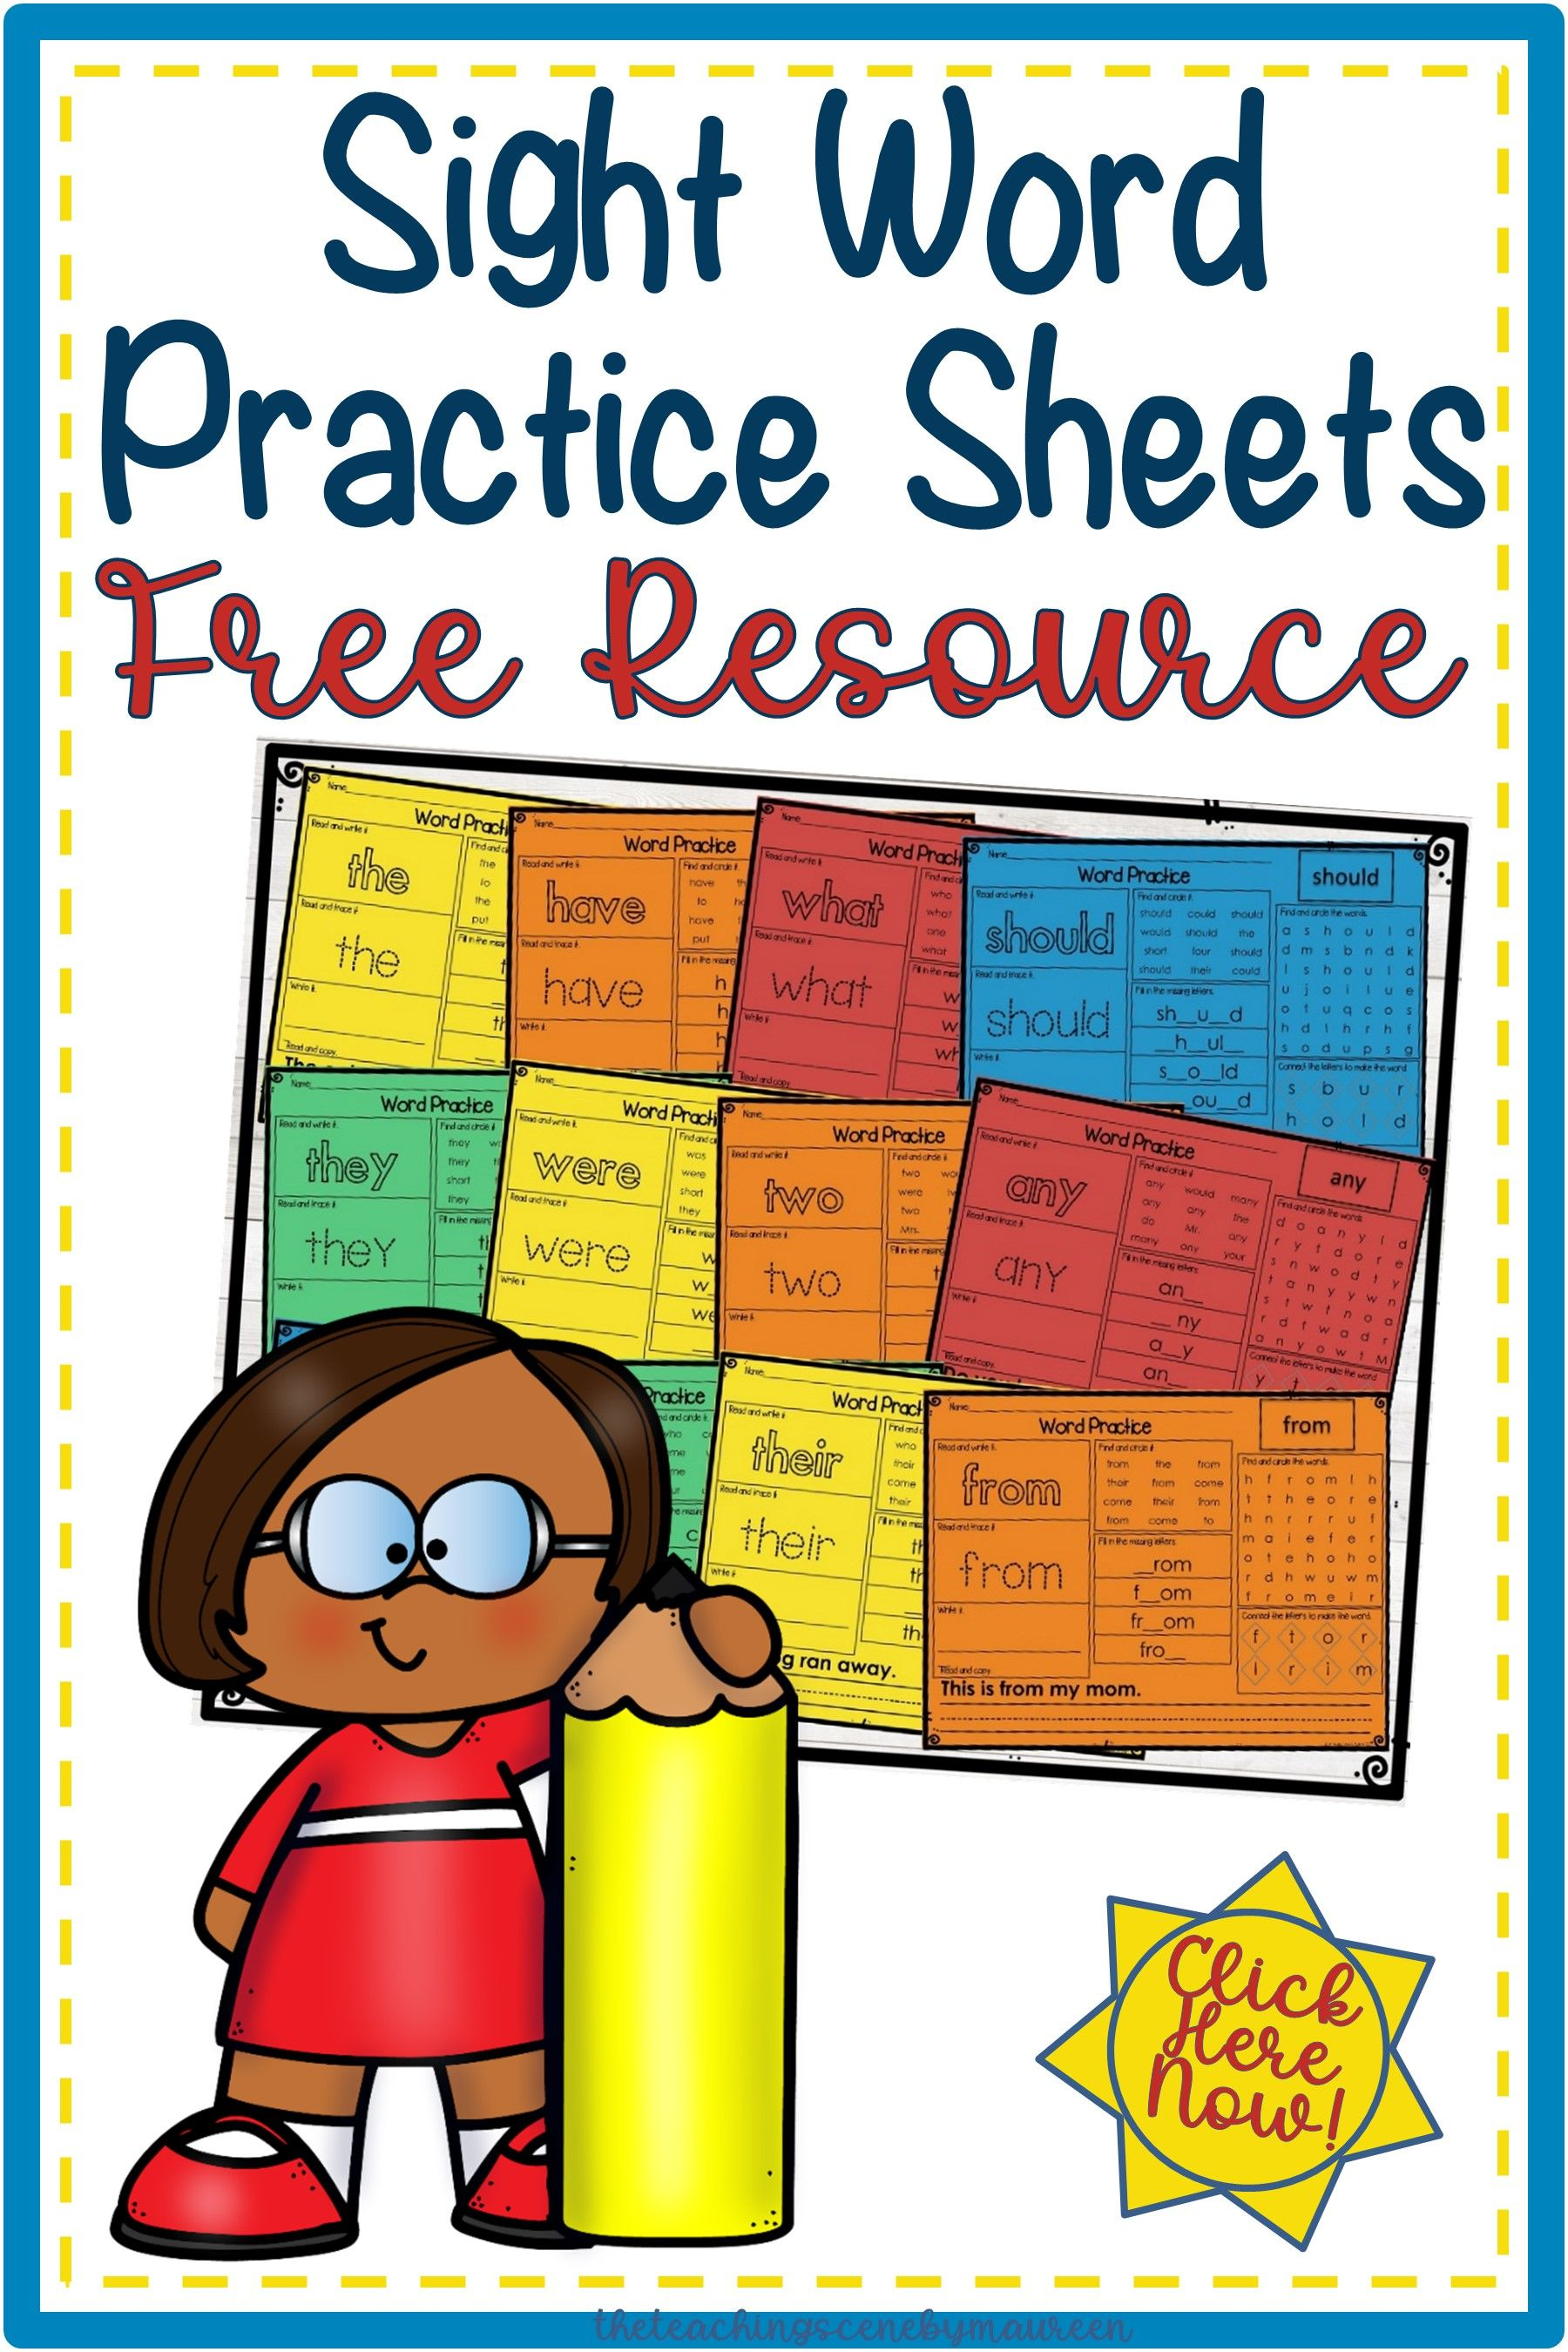 Free Sight Word Practice Sheets Sight Word Practice Sight Words Sight Word Worksheets [ 2700 x 1800 Pixel ]